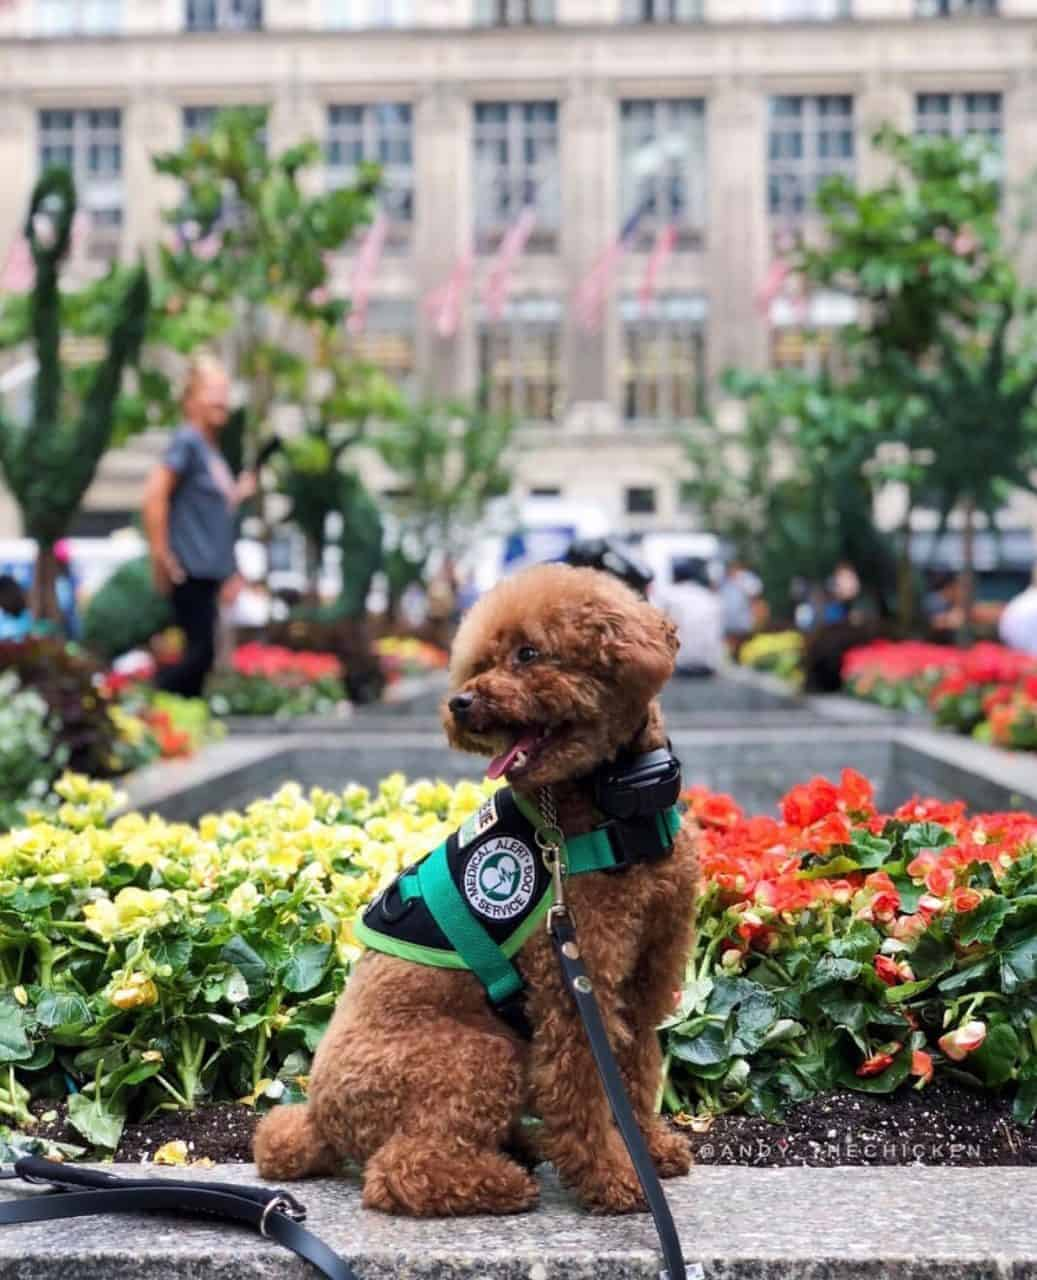 Mini poodle wearing a black and green service dog vest in front of yellow and red flowers